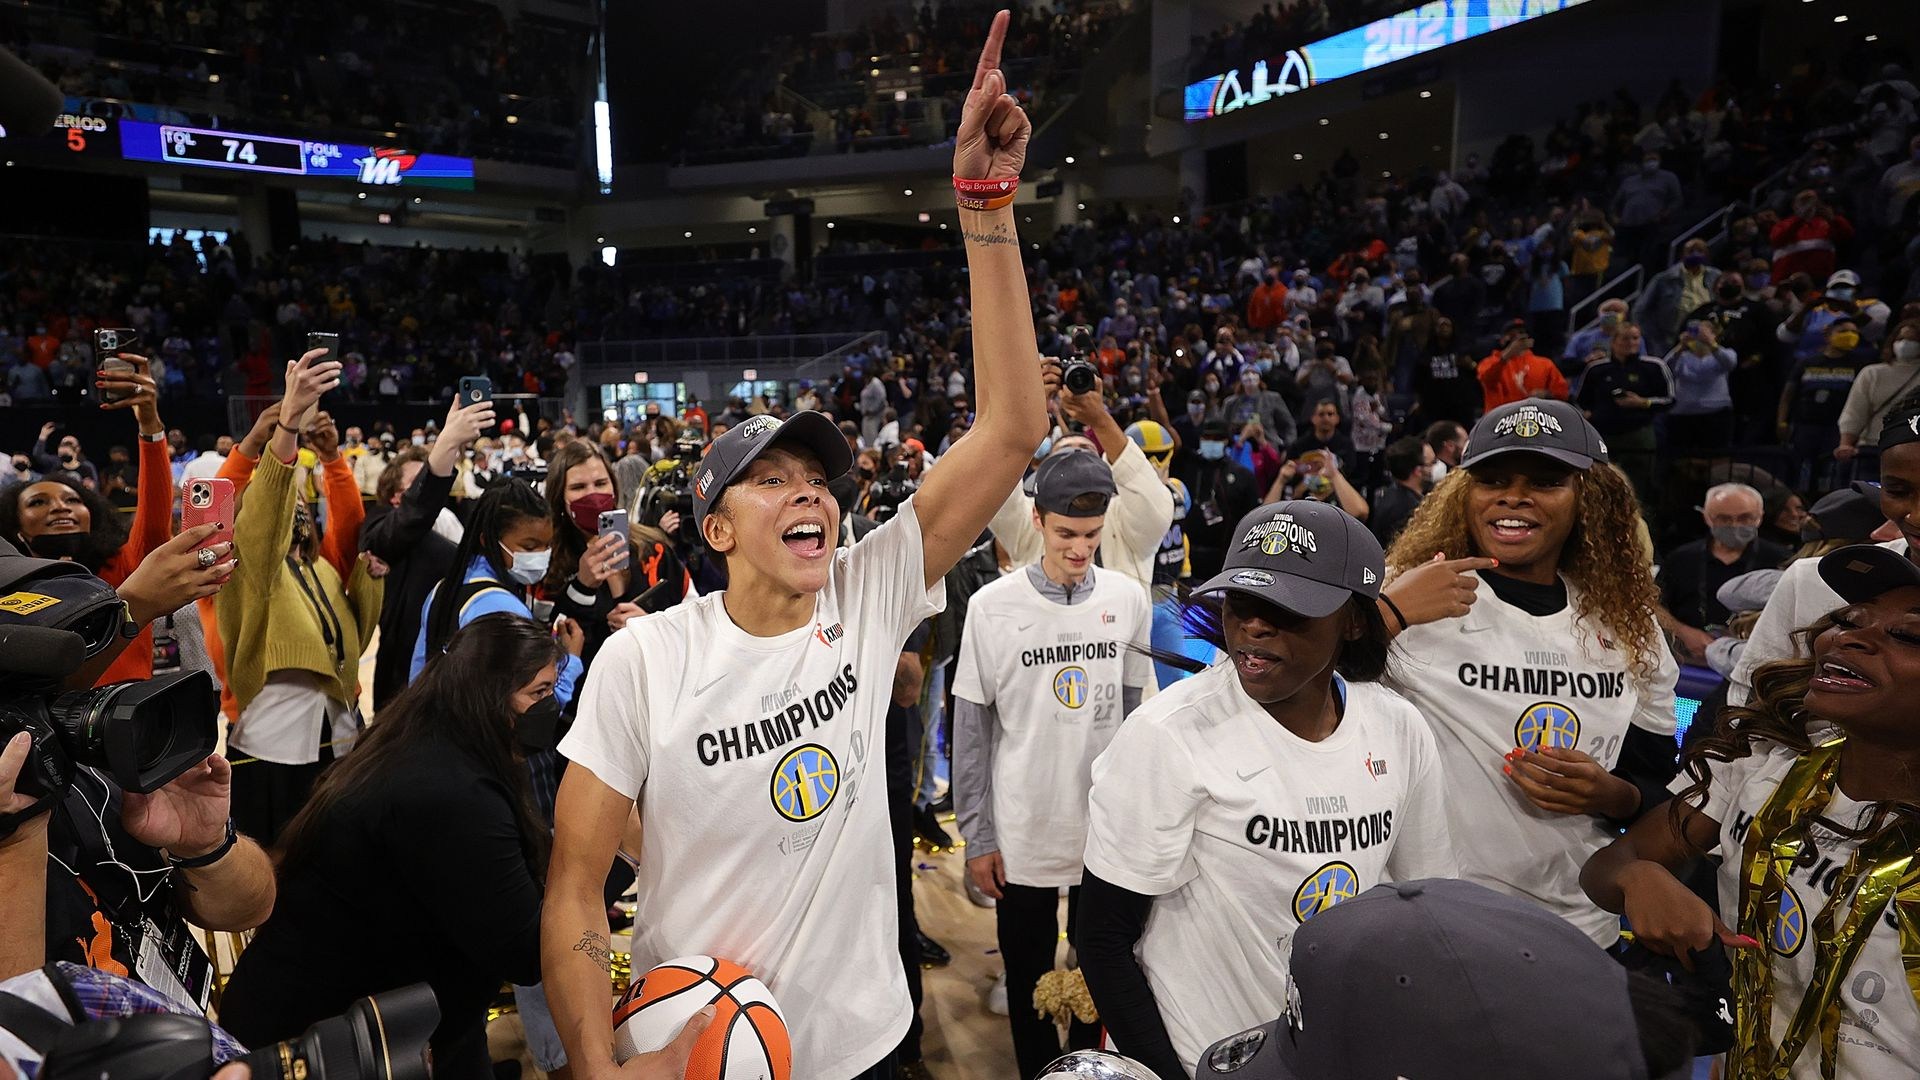 Chicago Sky teammates celebrate on the court.